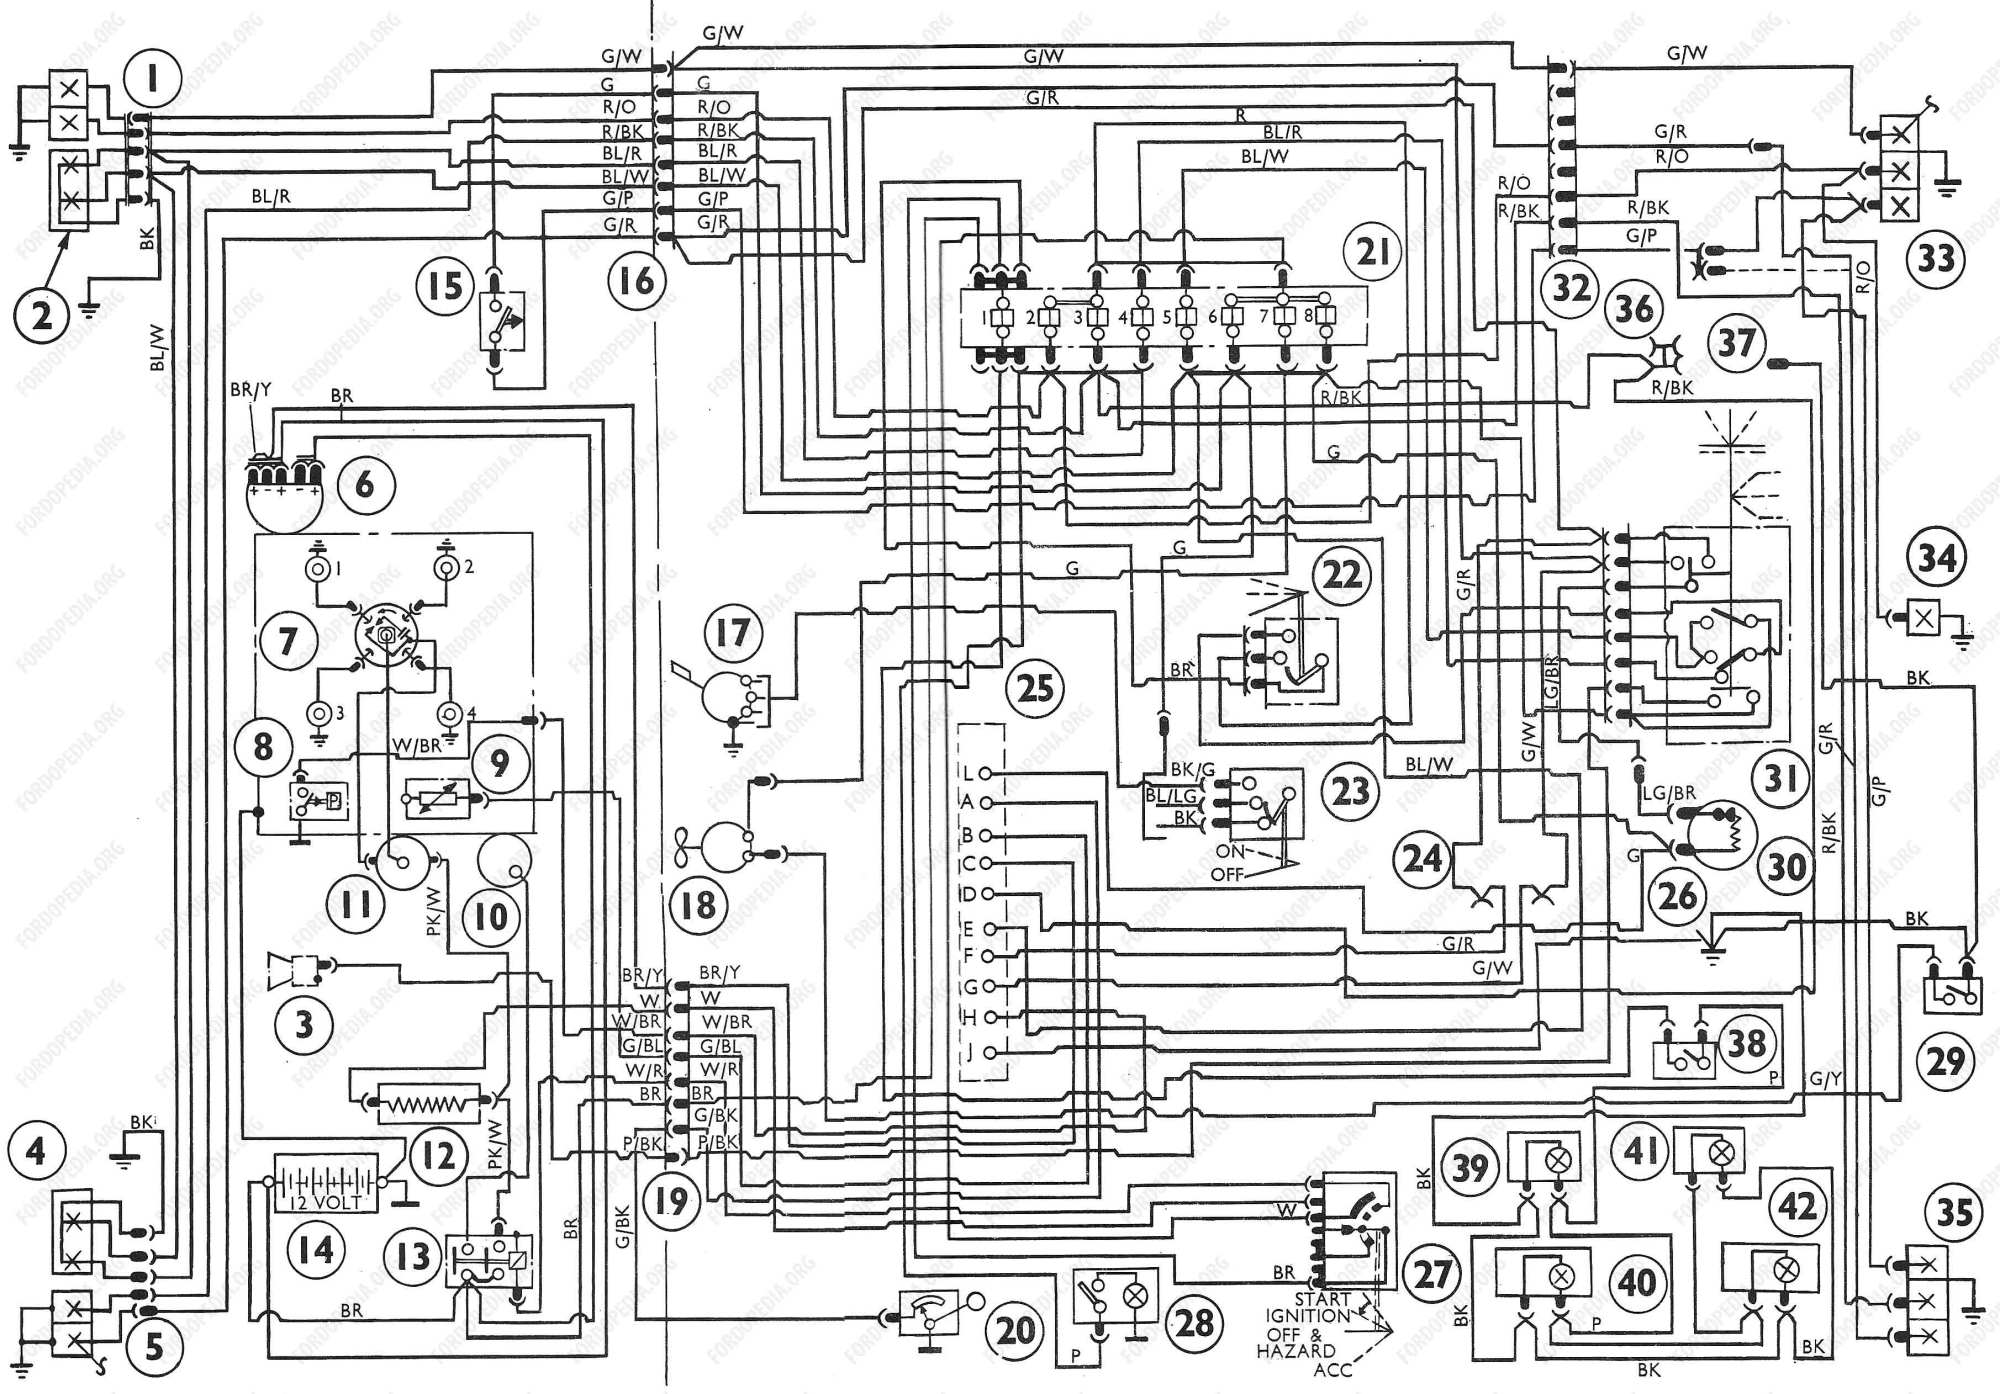 hight resolution of wiring diagrams ford transit mki fob prior to 091968 wiring wiring ford transit mk7 headlight wiring ford transit headlight wiring